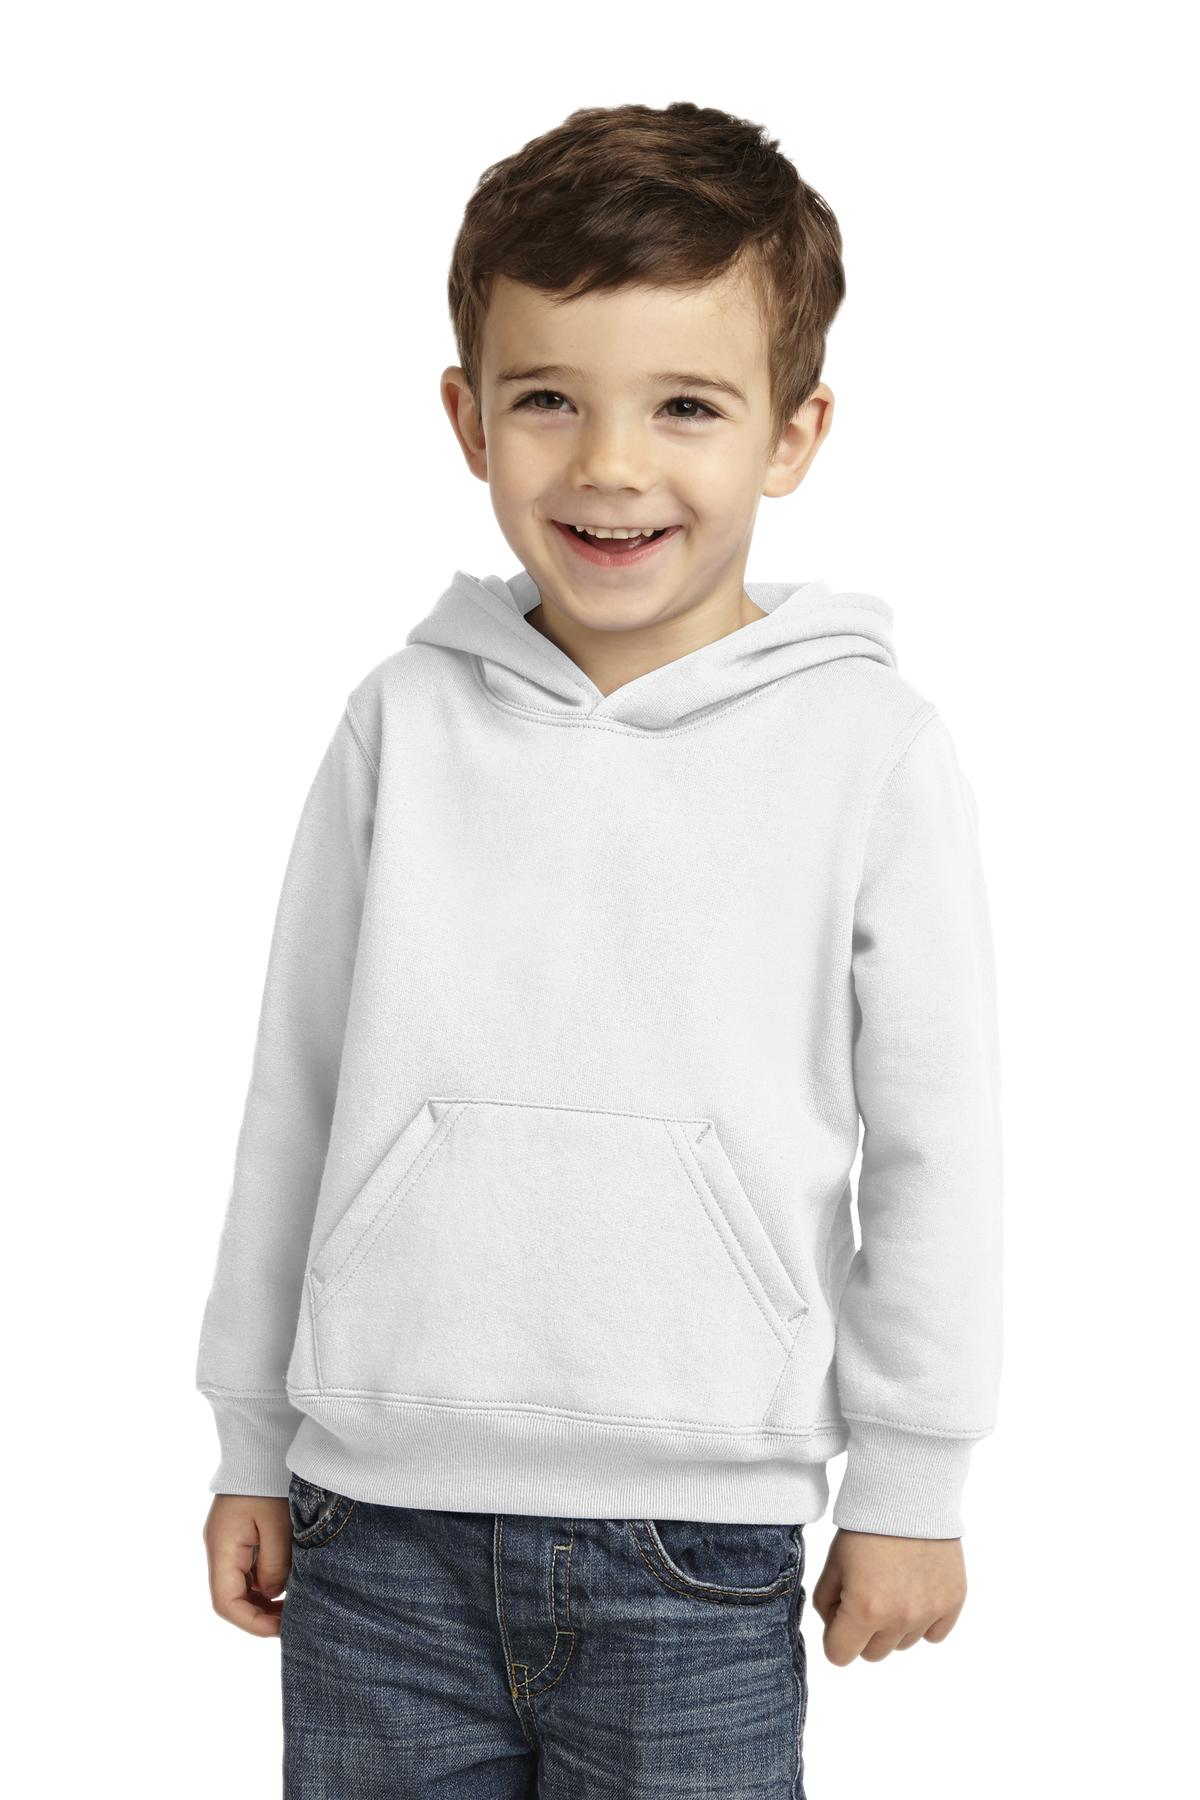 Port & Company ®  Toddler Core Fleece Pullover Hooded Sweatshirt. CAR78TH - White